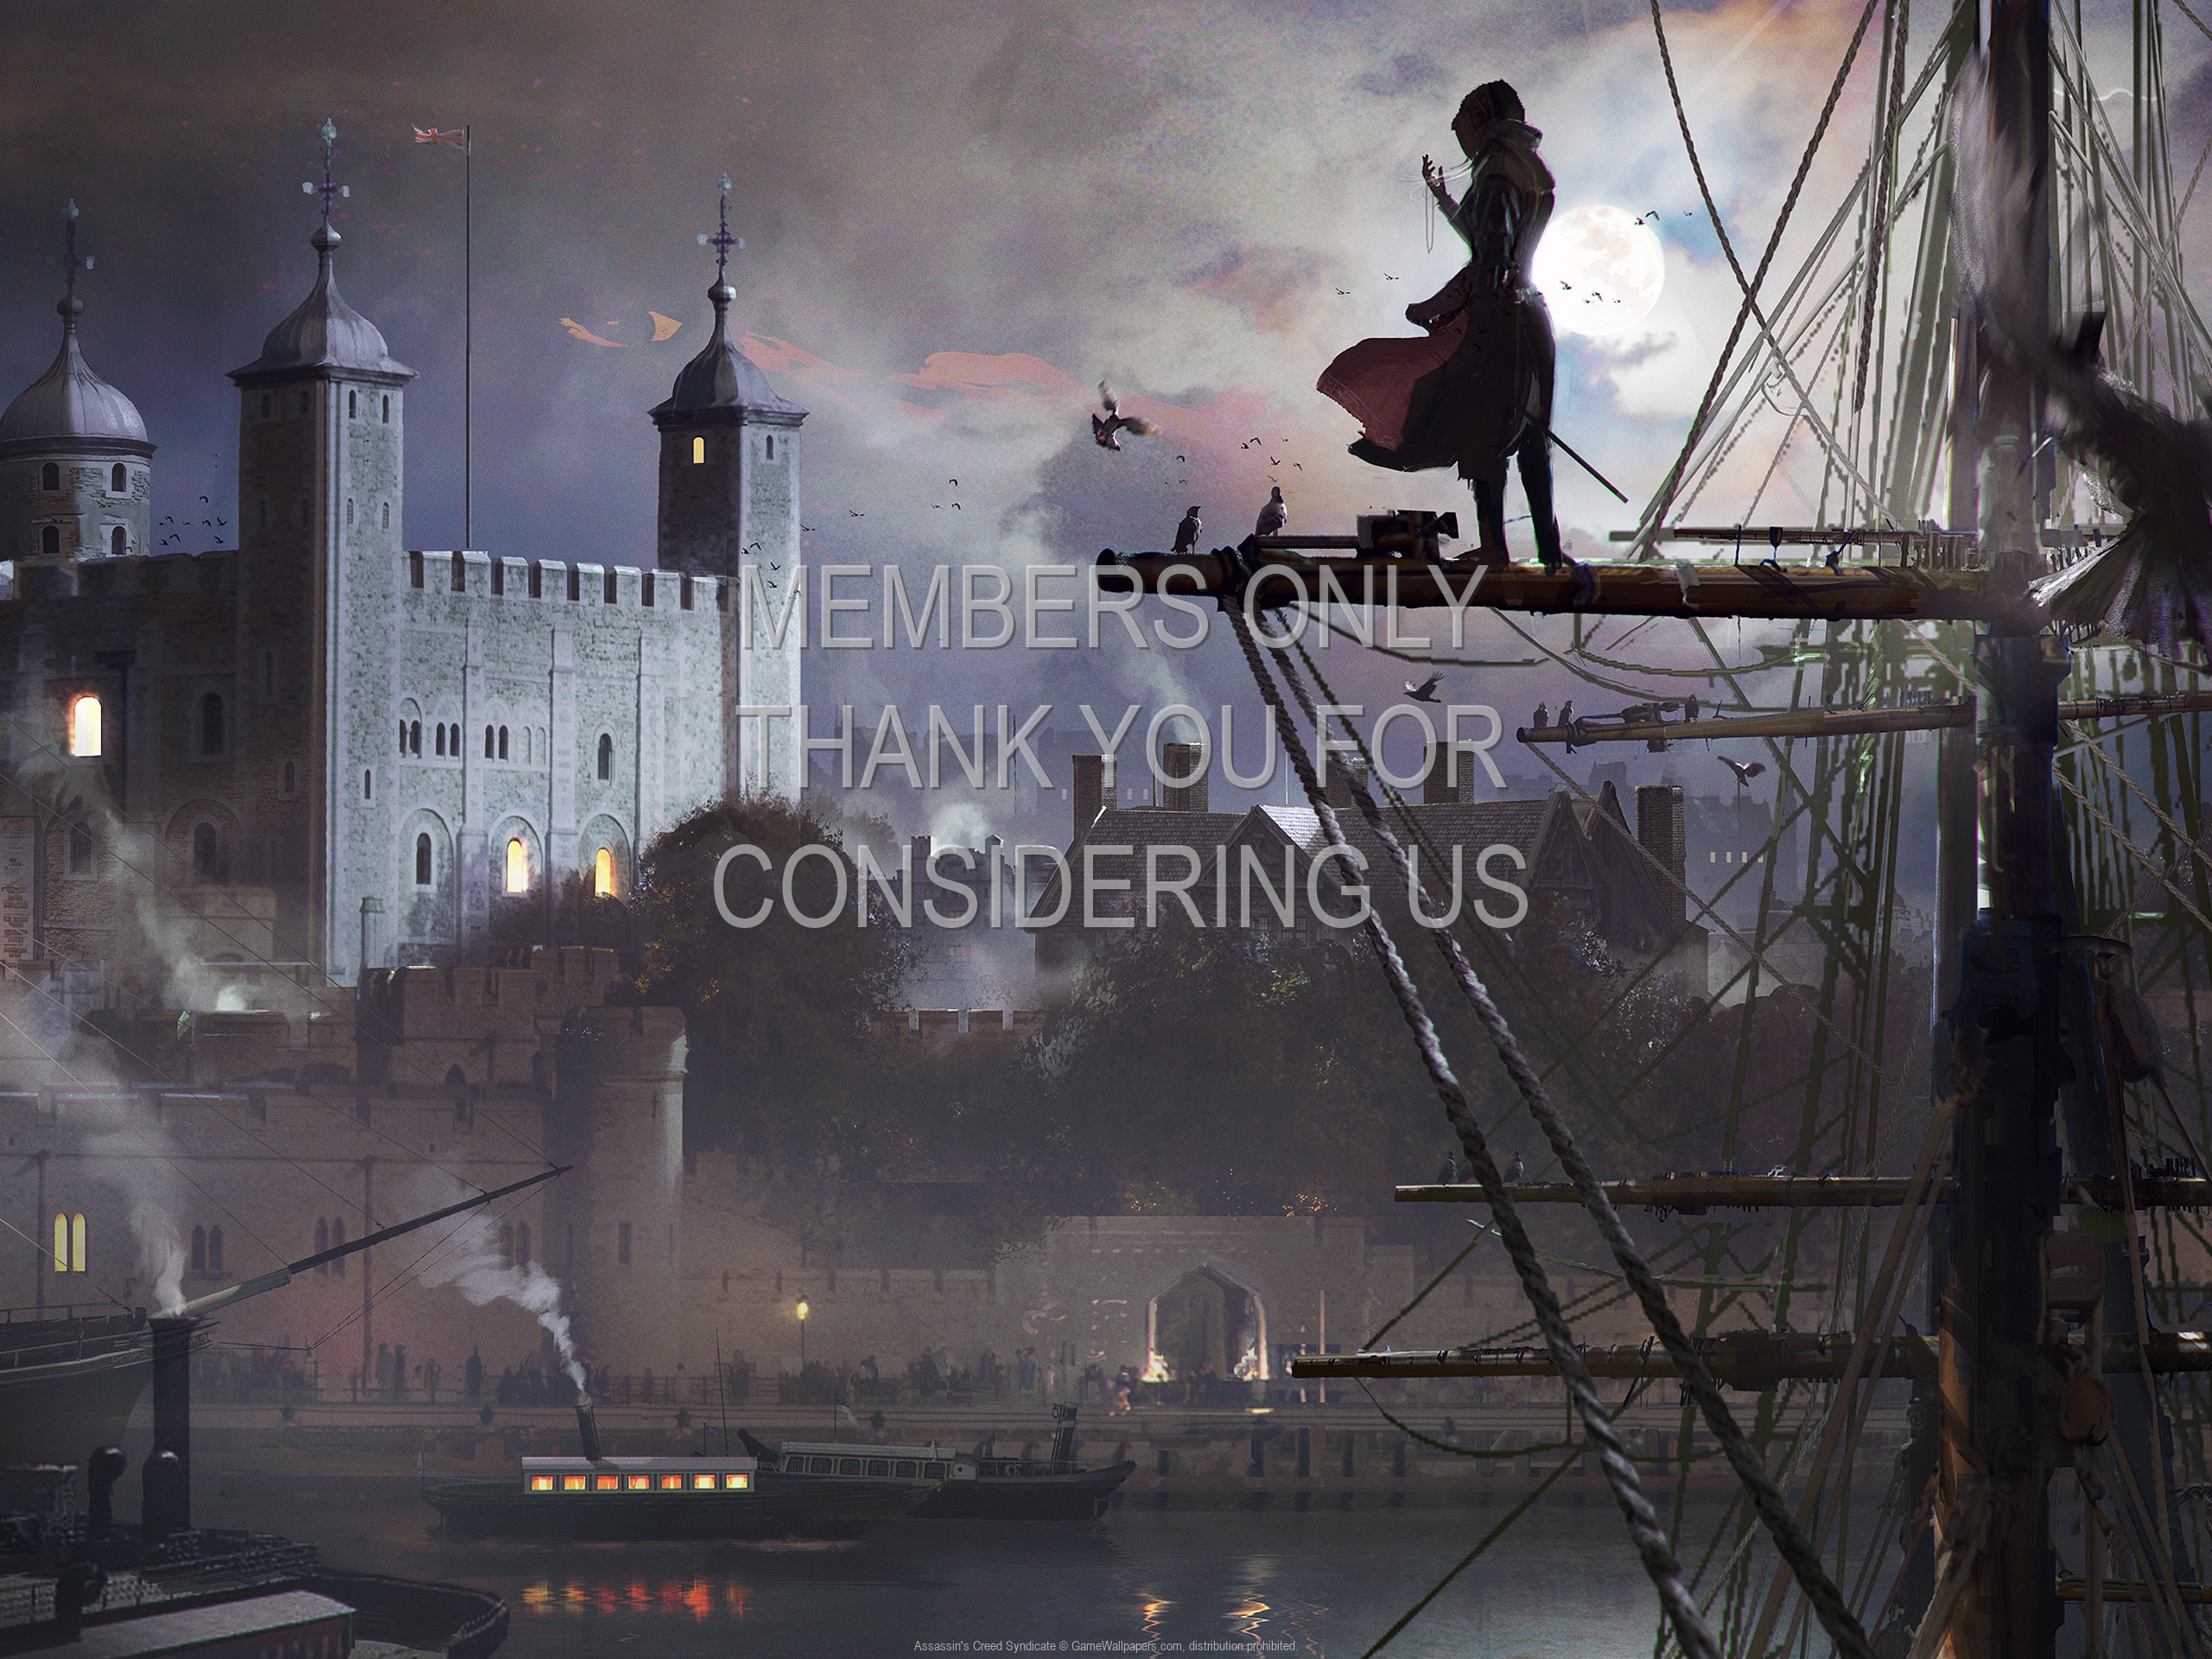 Assassin's Creed: Syndicate 1920x1080 Mobile wallpaper or background 22